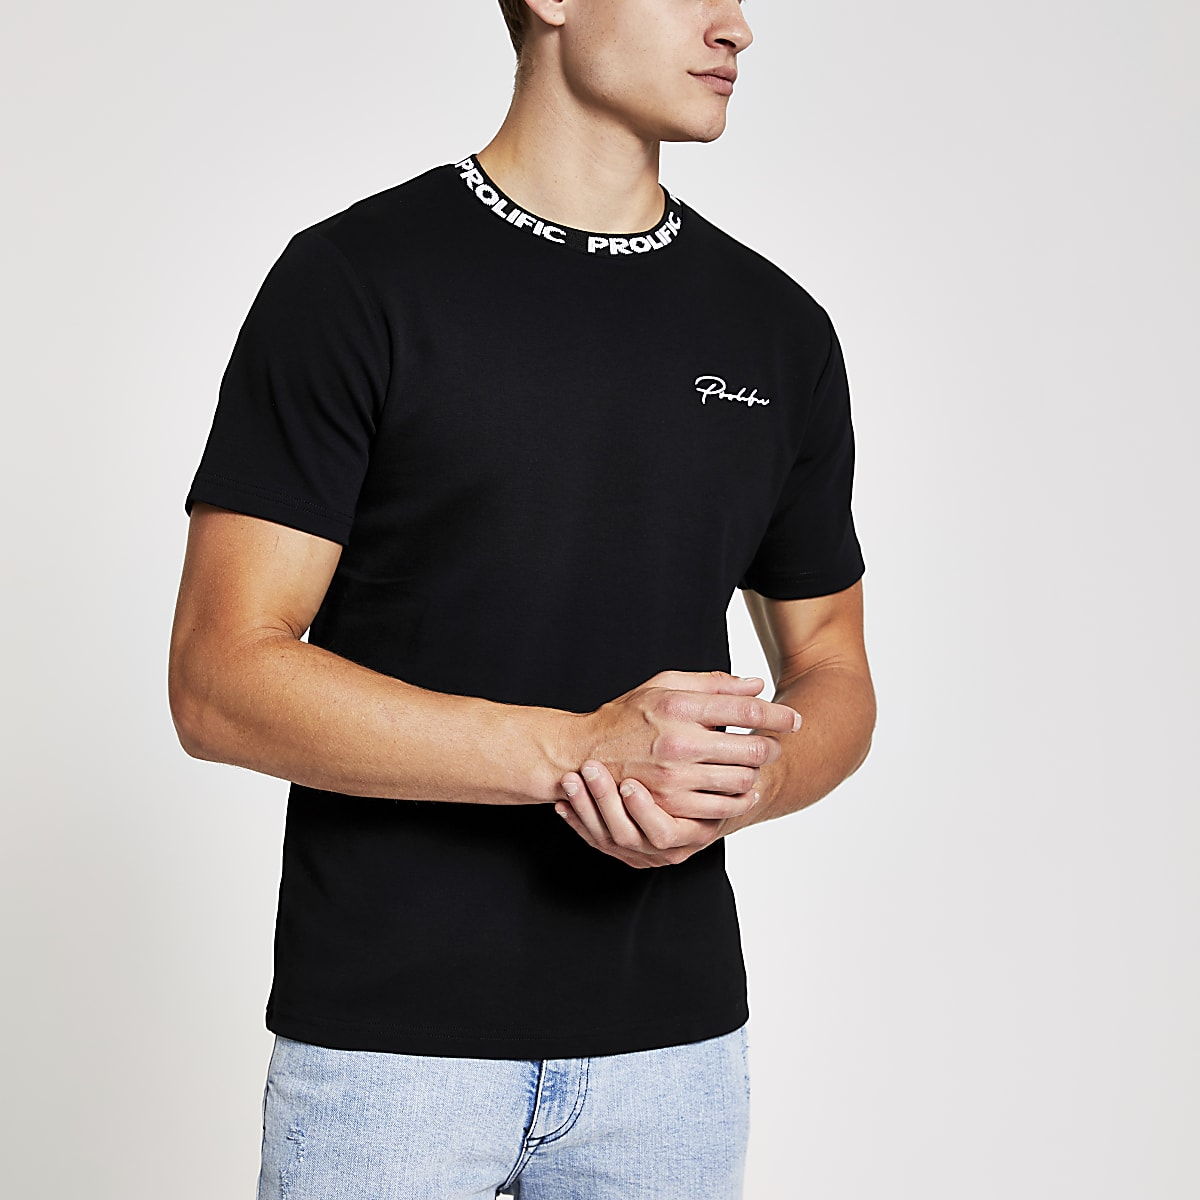 Prolific – T-shirt slim noir